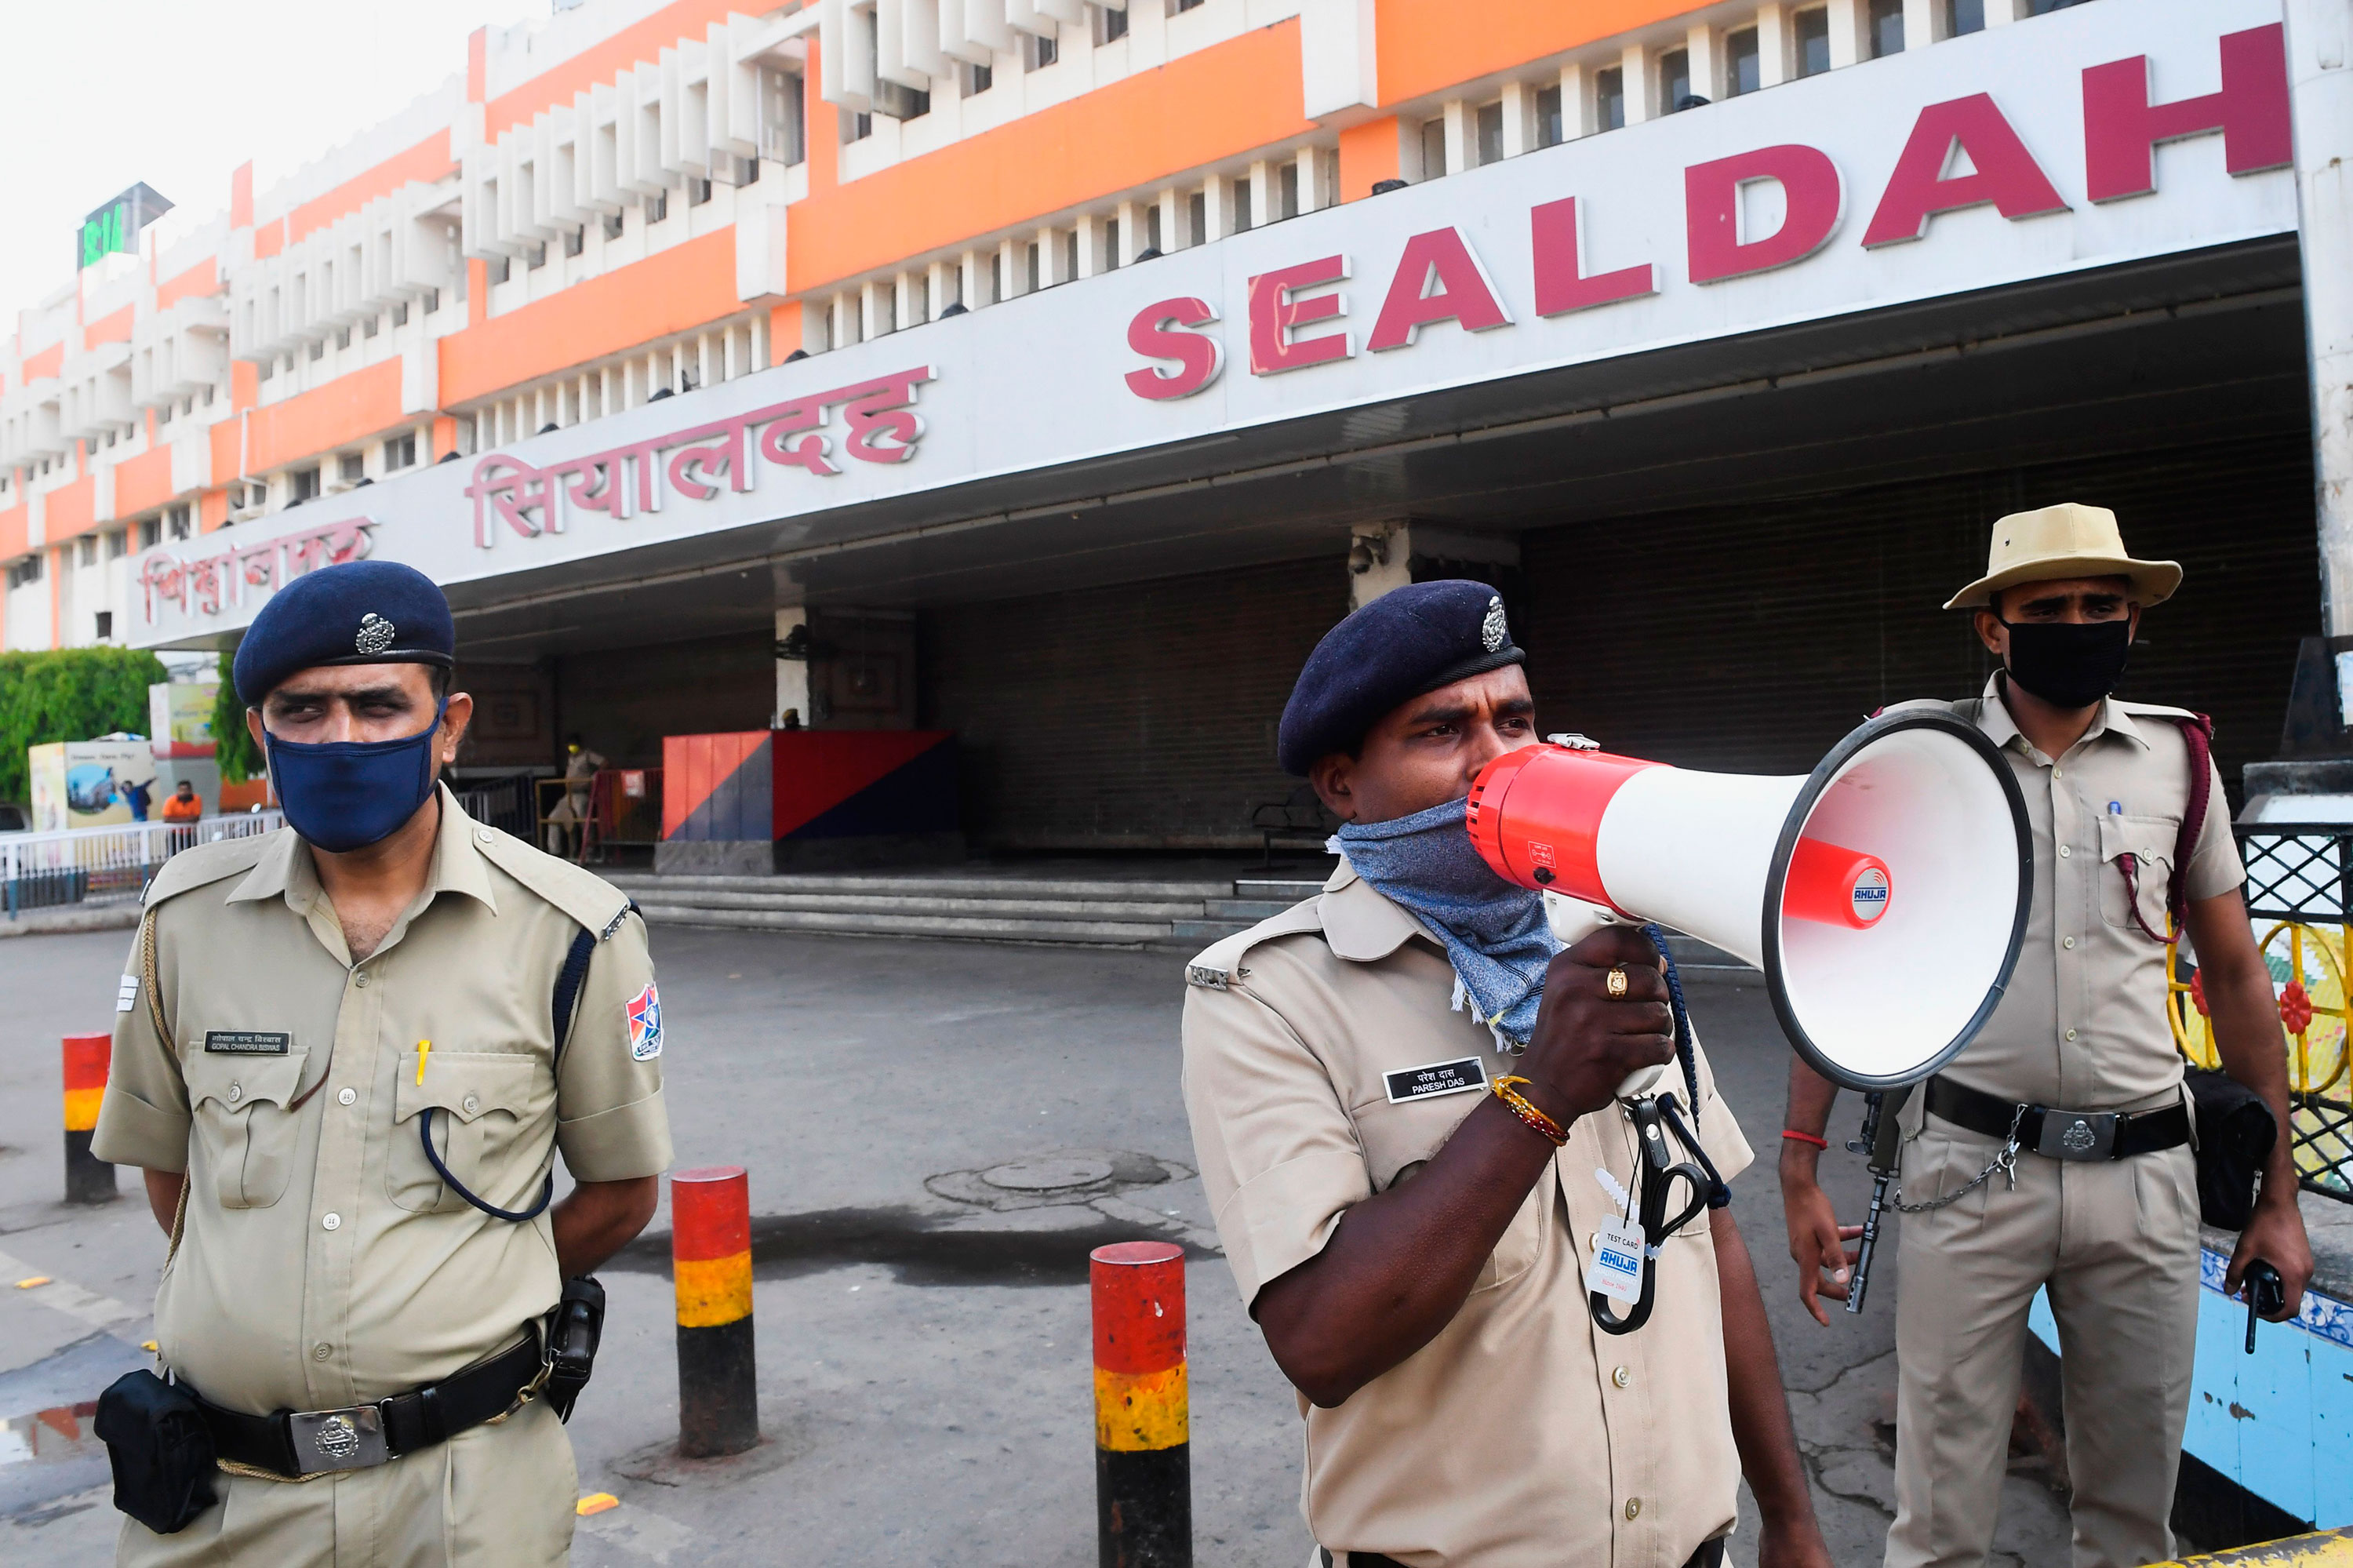 Railway Protection Force personnel announce the suspension of railway services through the end of month at Sealdah Railway station in Kolkata, India on March 23.